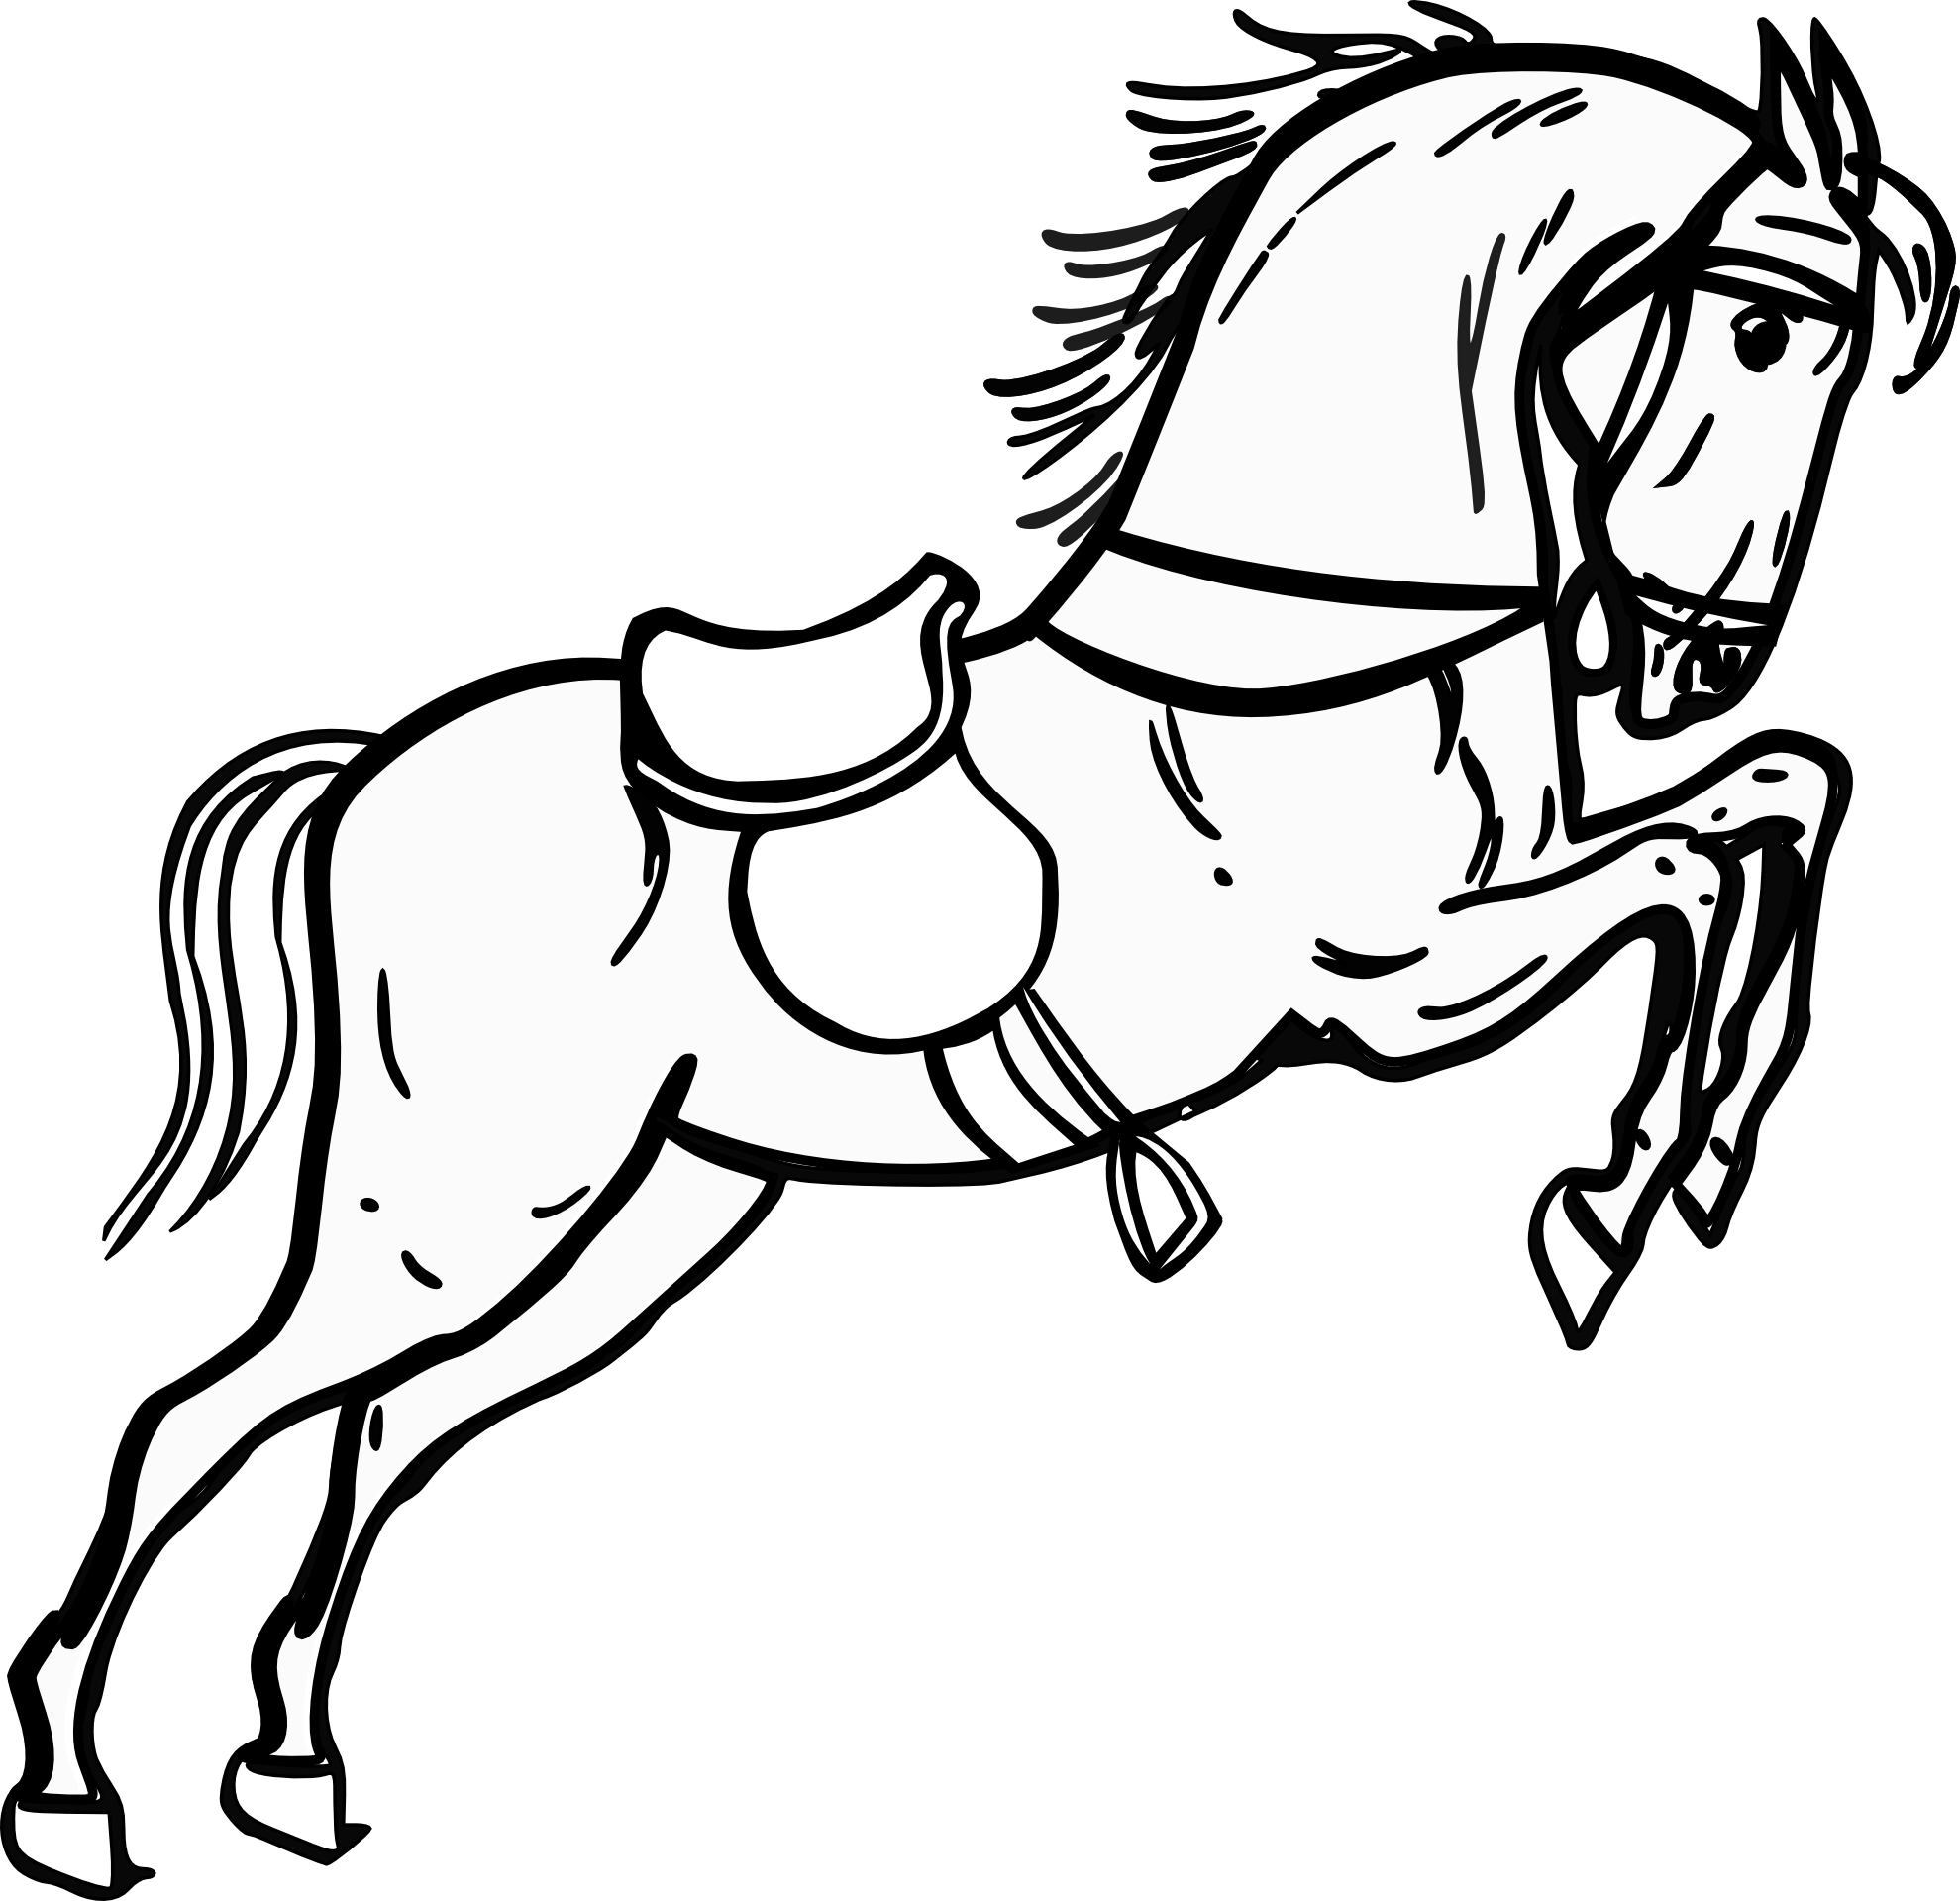 Cute Clipart Horse Cute Horse Transparent Free For Download On Webstockreview 2020